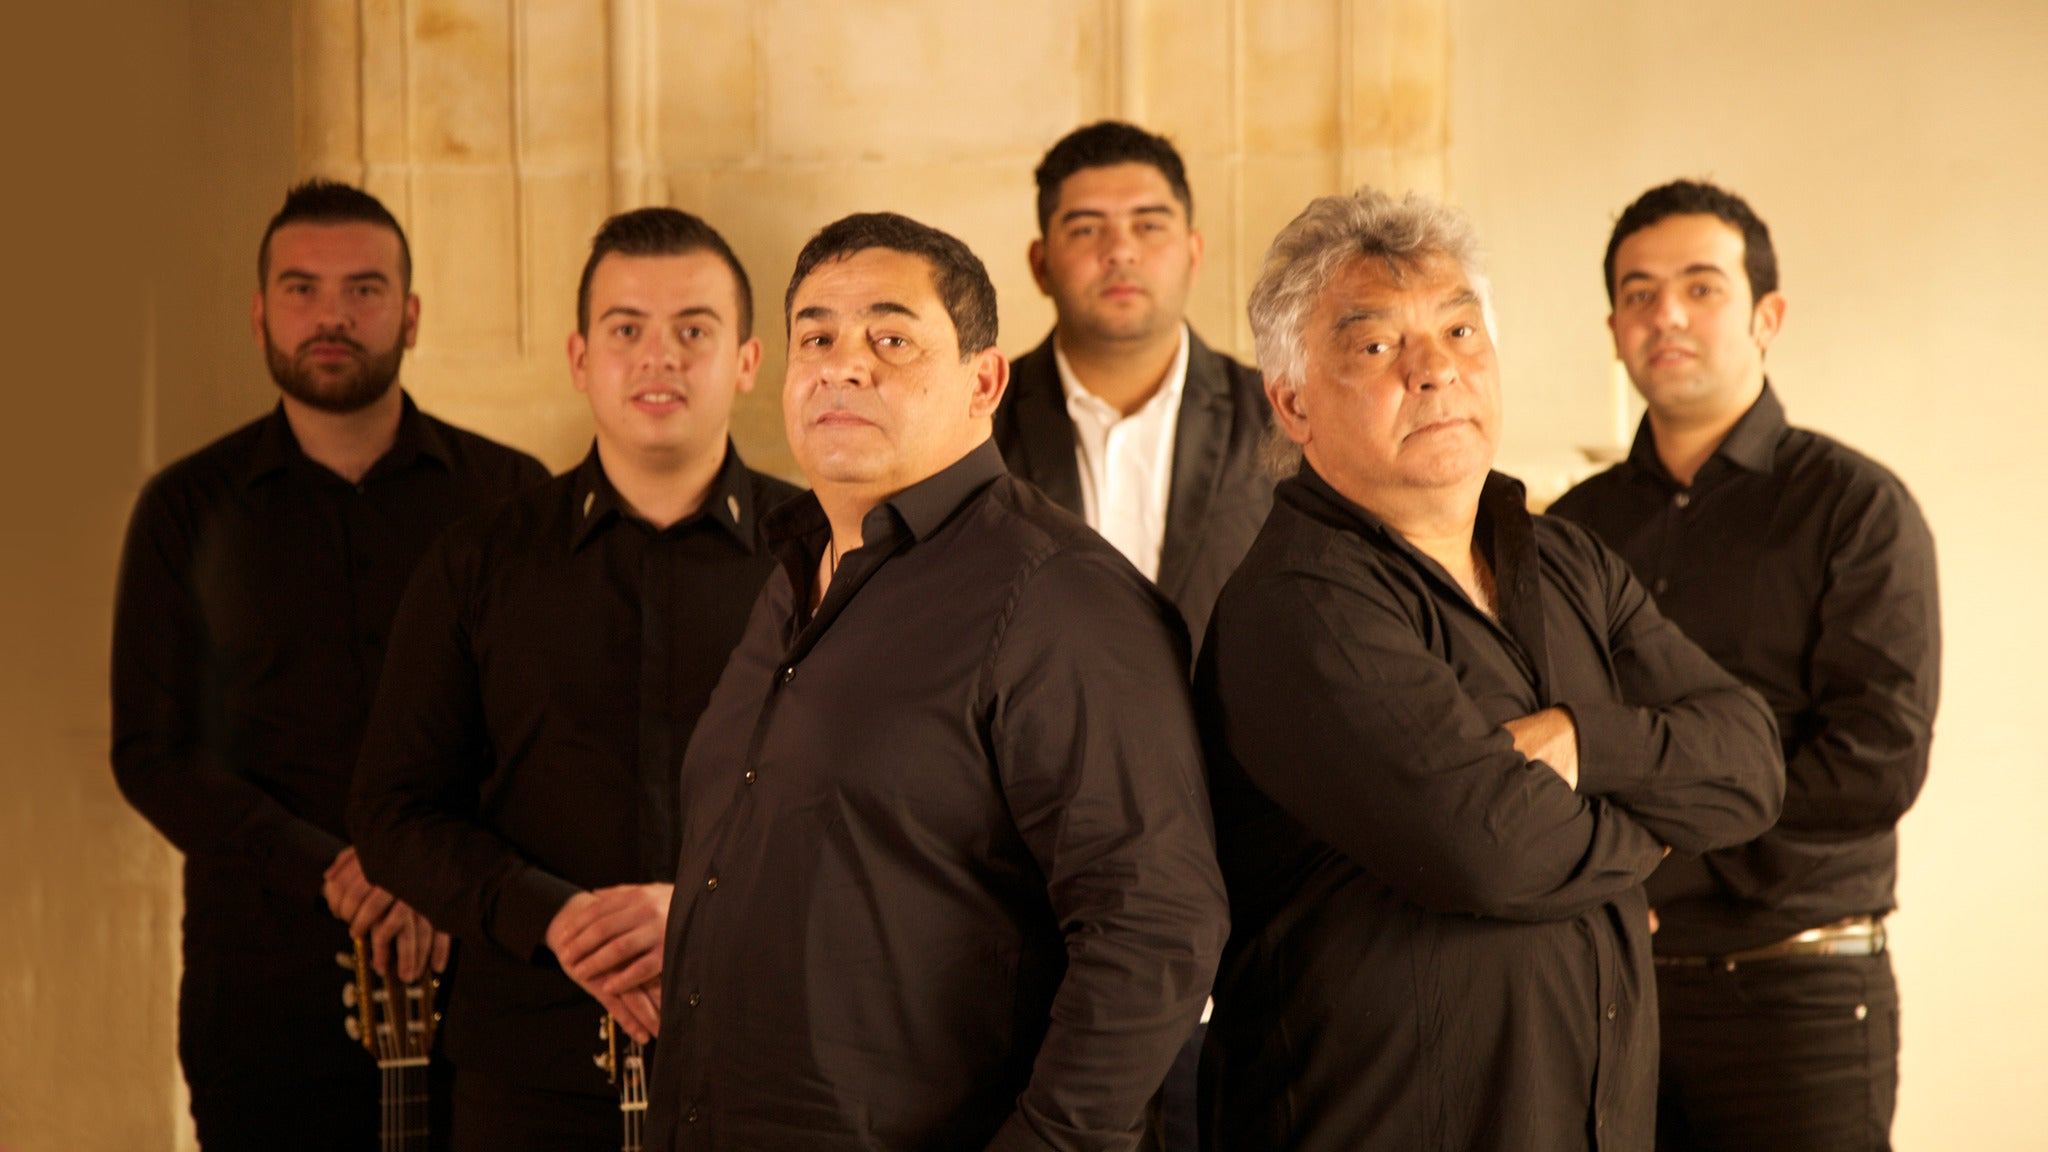 THE GIPSY KINGS with special guest Simi Stone